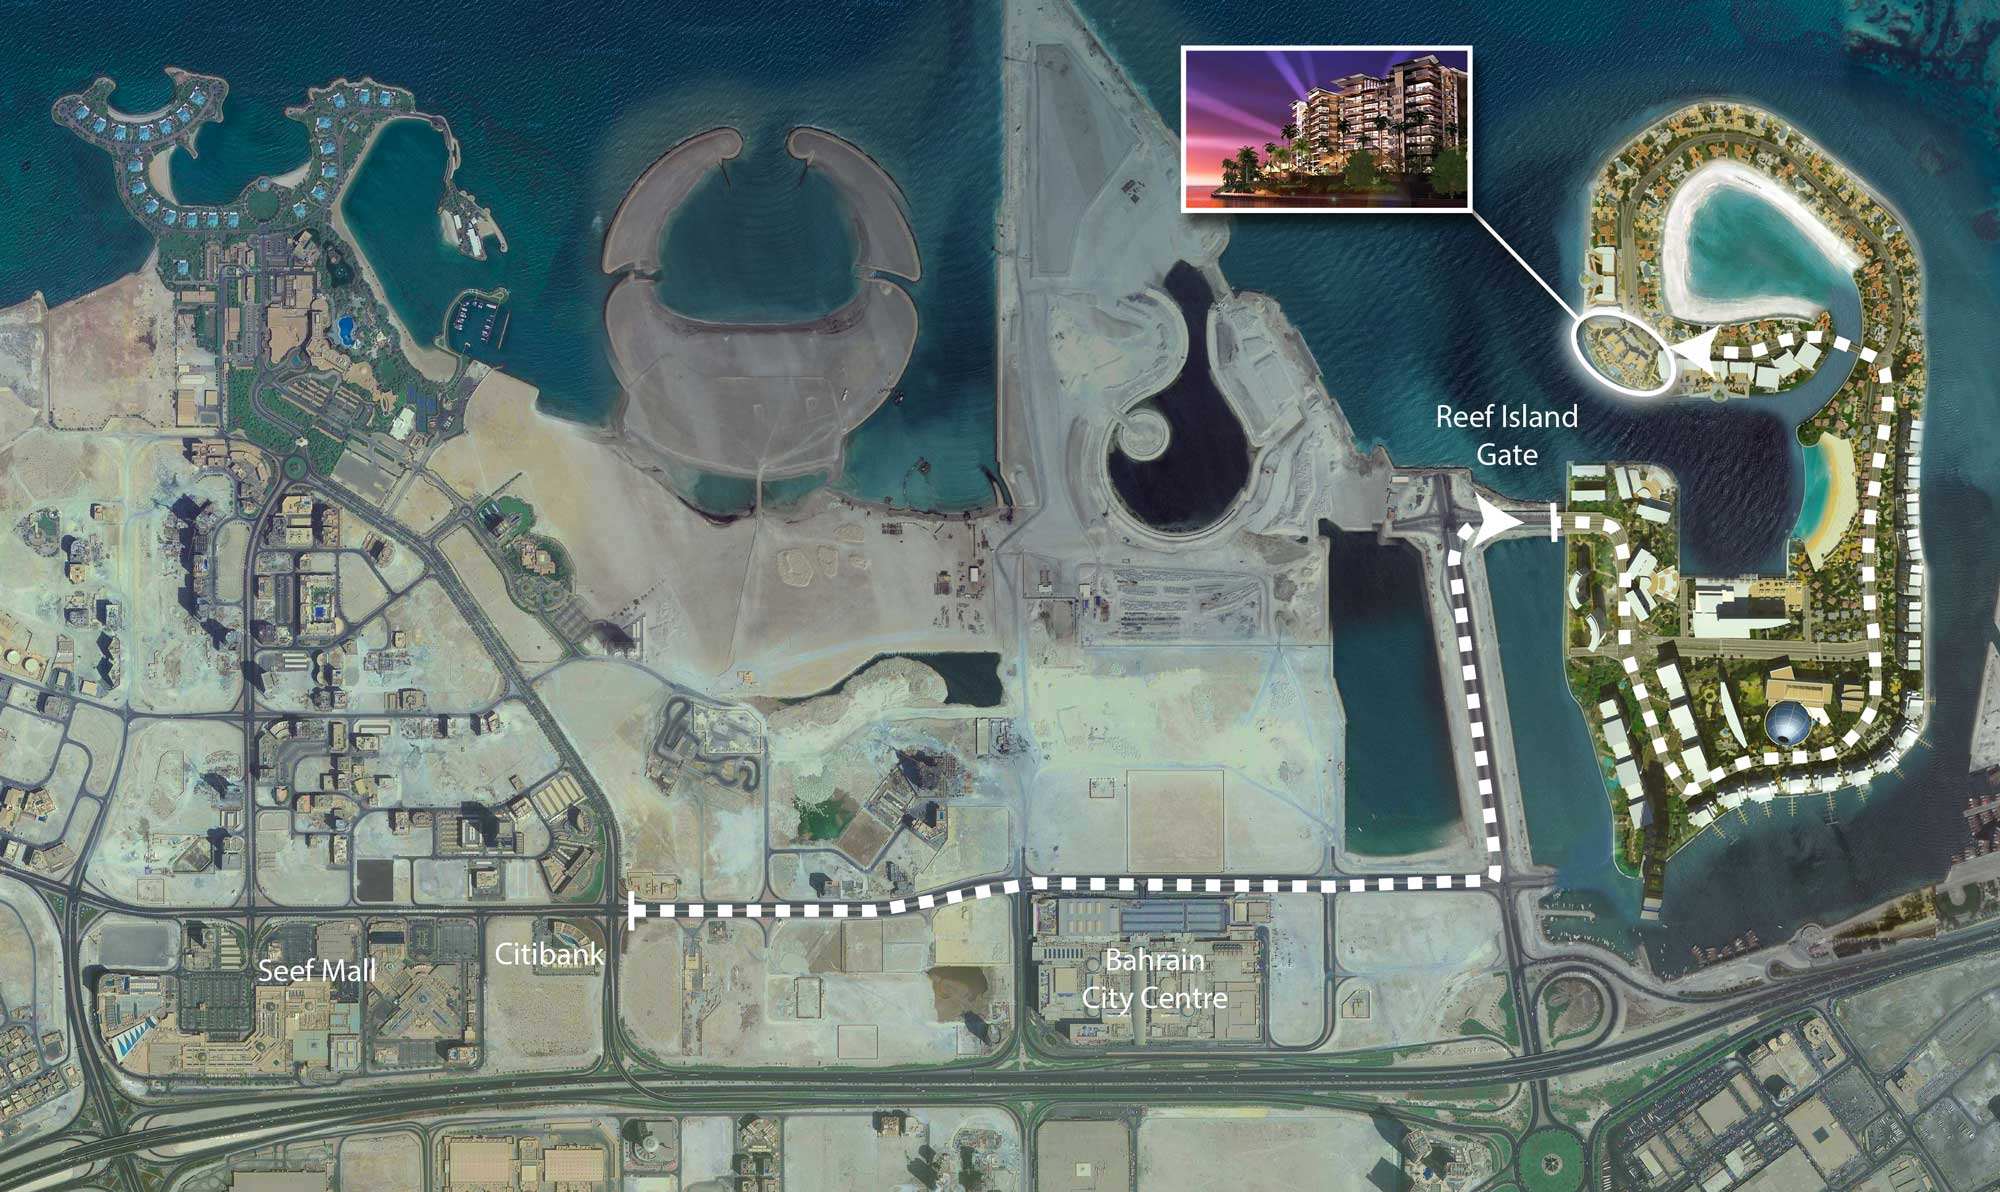 Reef-Island-Bahrain-Map